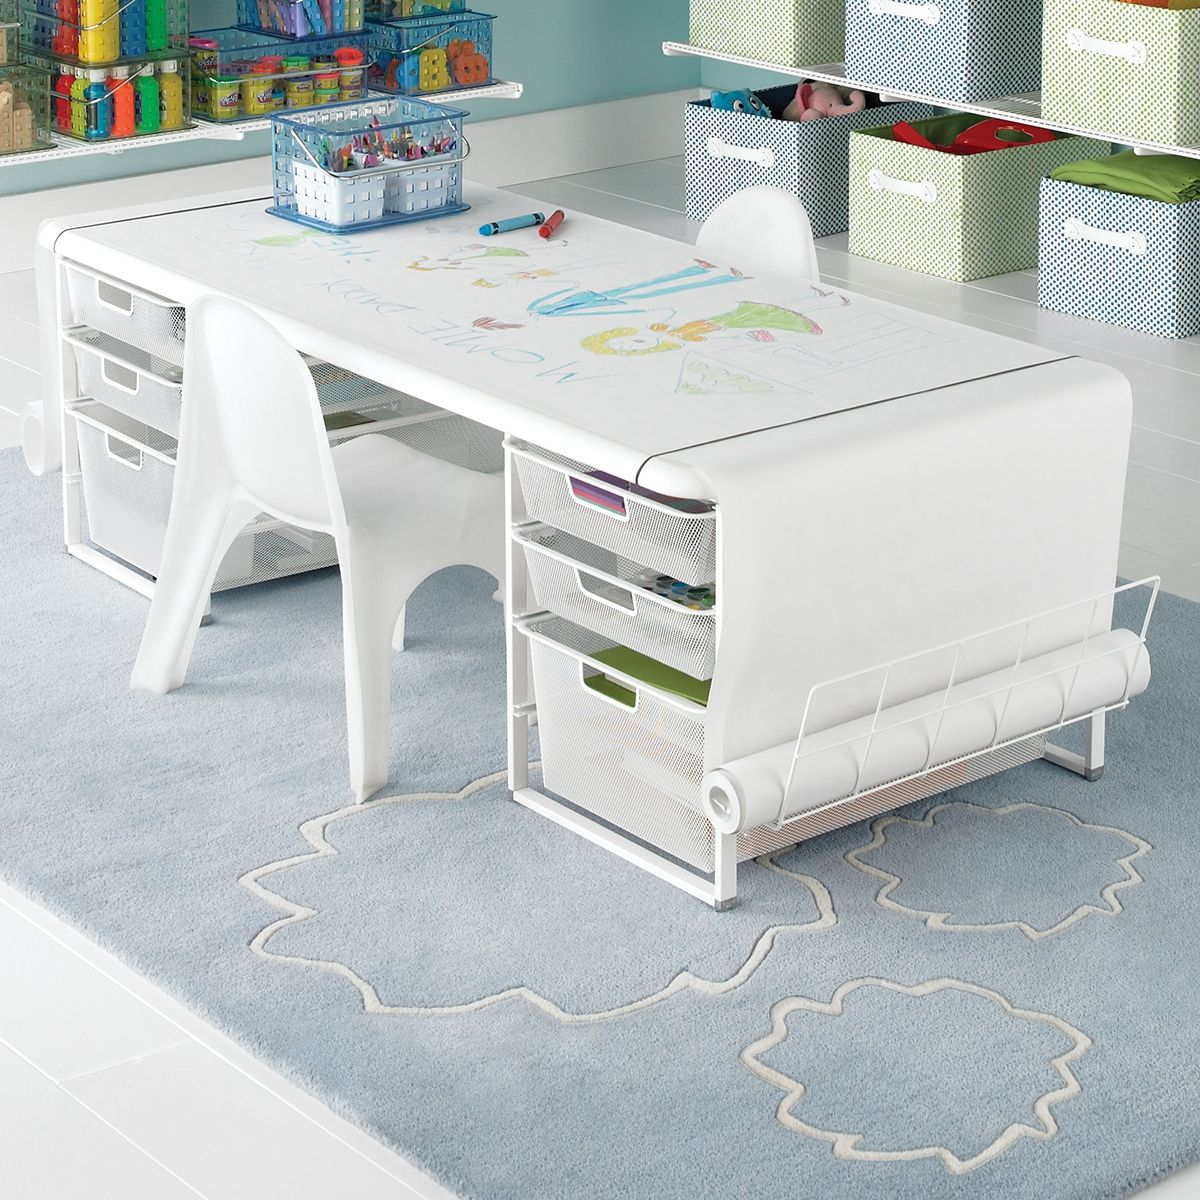 The Elfa Kids Mesh Coloring Table Is An Adjustable Desk Your